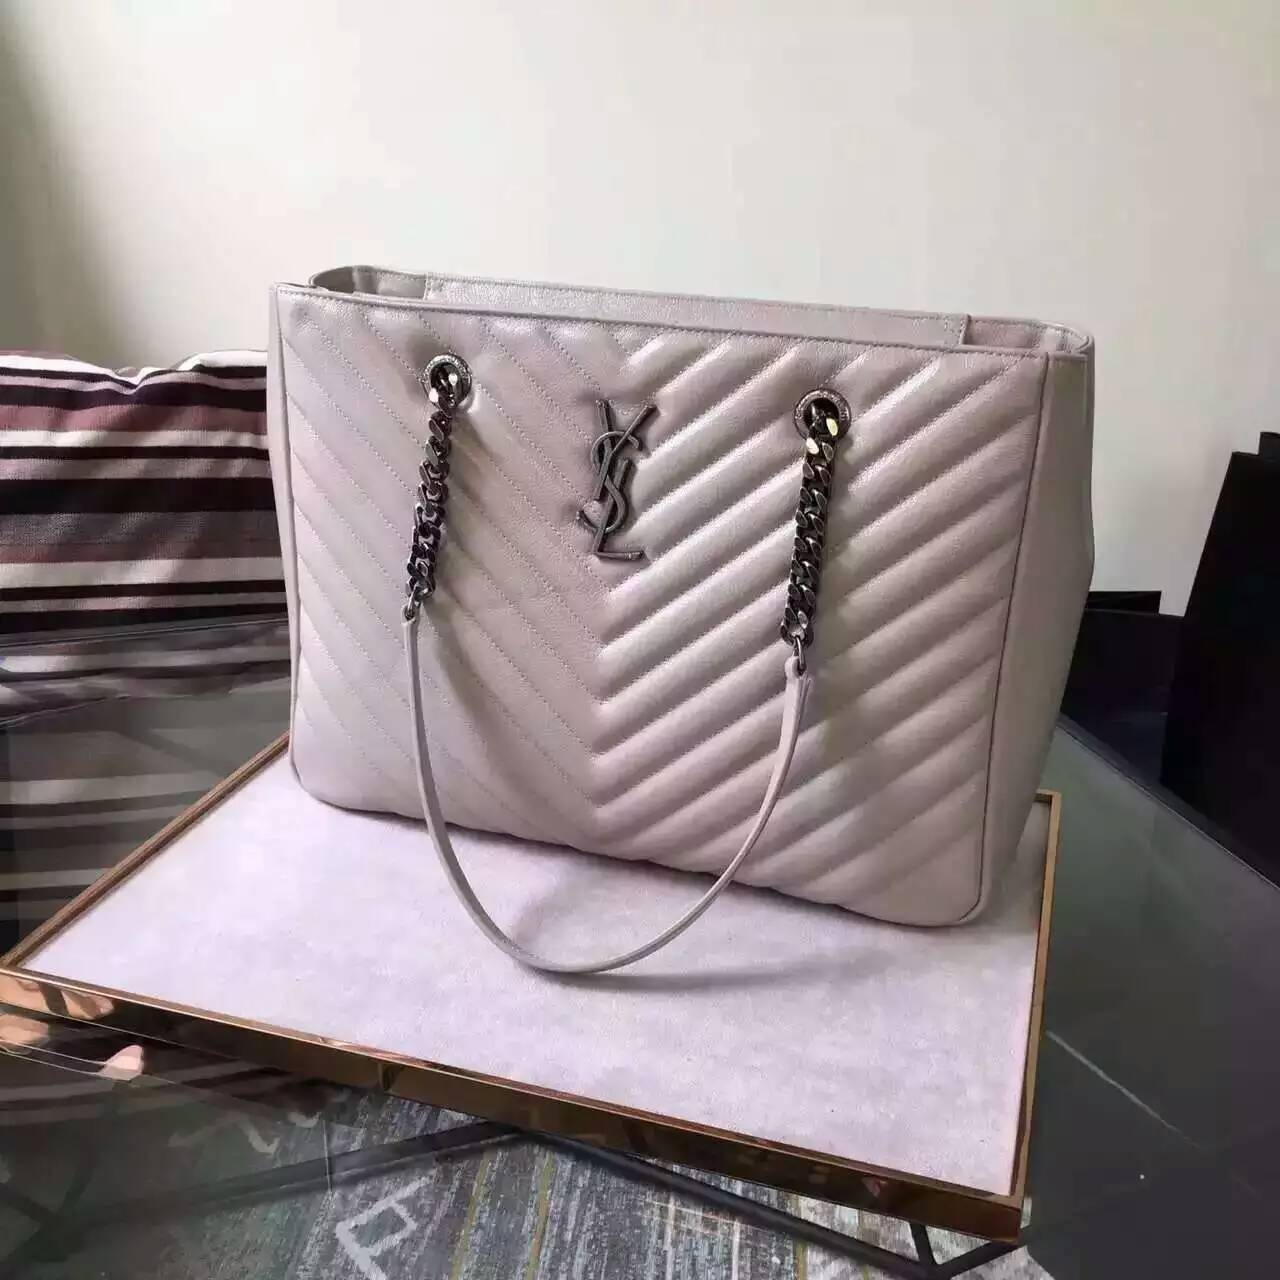 New Arrival!2016 Cheap YSL Out Sale with Free Shipping-Saint Laurent Classic Monogram Shopping Bag in Dove White MATELASSÉ Leather